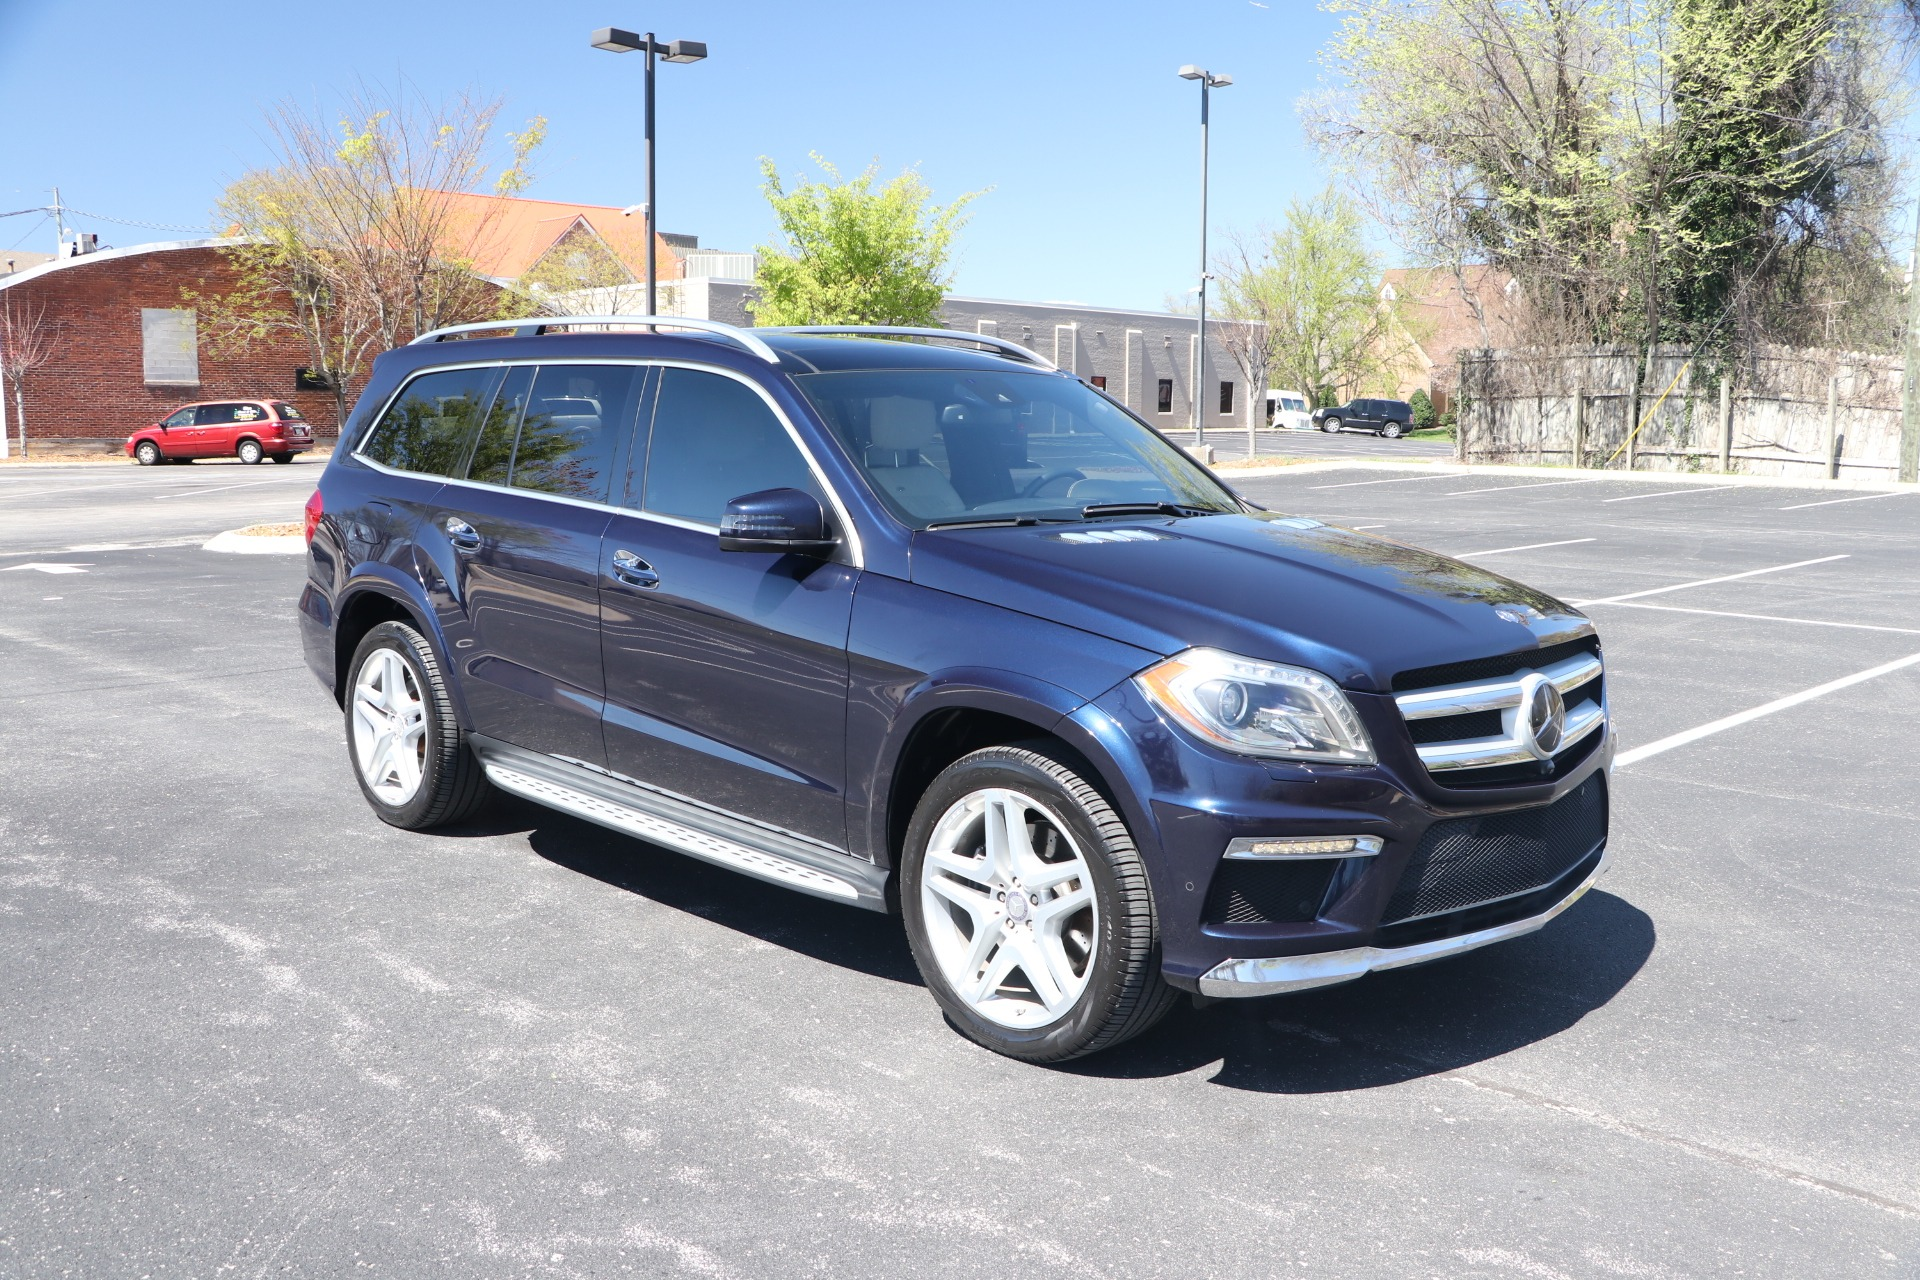 Used 2014 Mercedes-Benz GL550 4 MATIC W/NAV for sale $29,950 at Auto Collection in Murfreesboro TN 37130 1